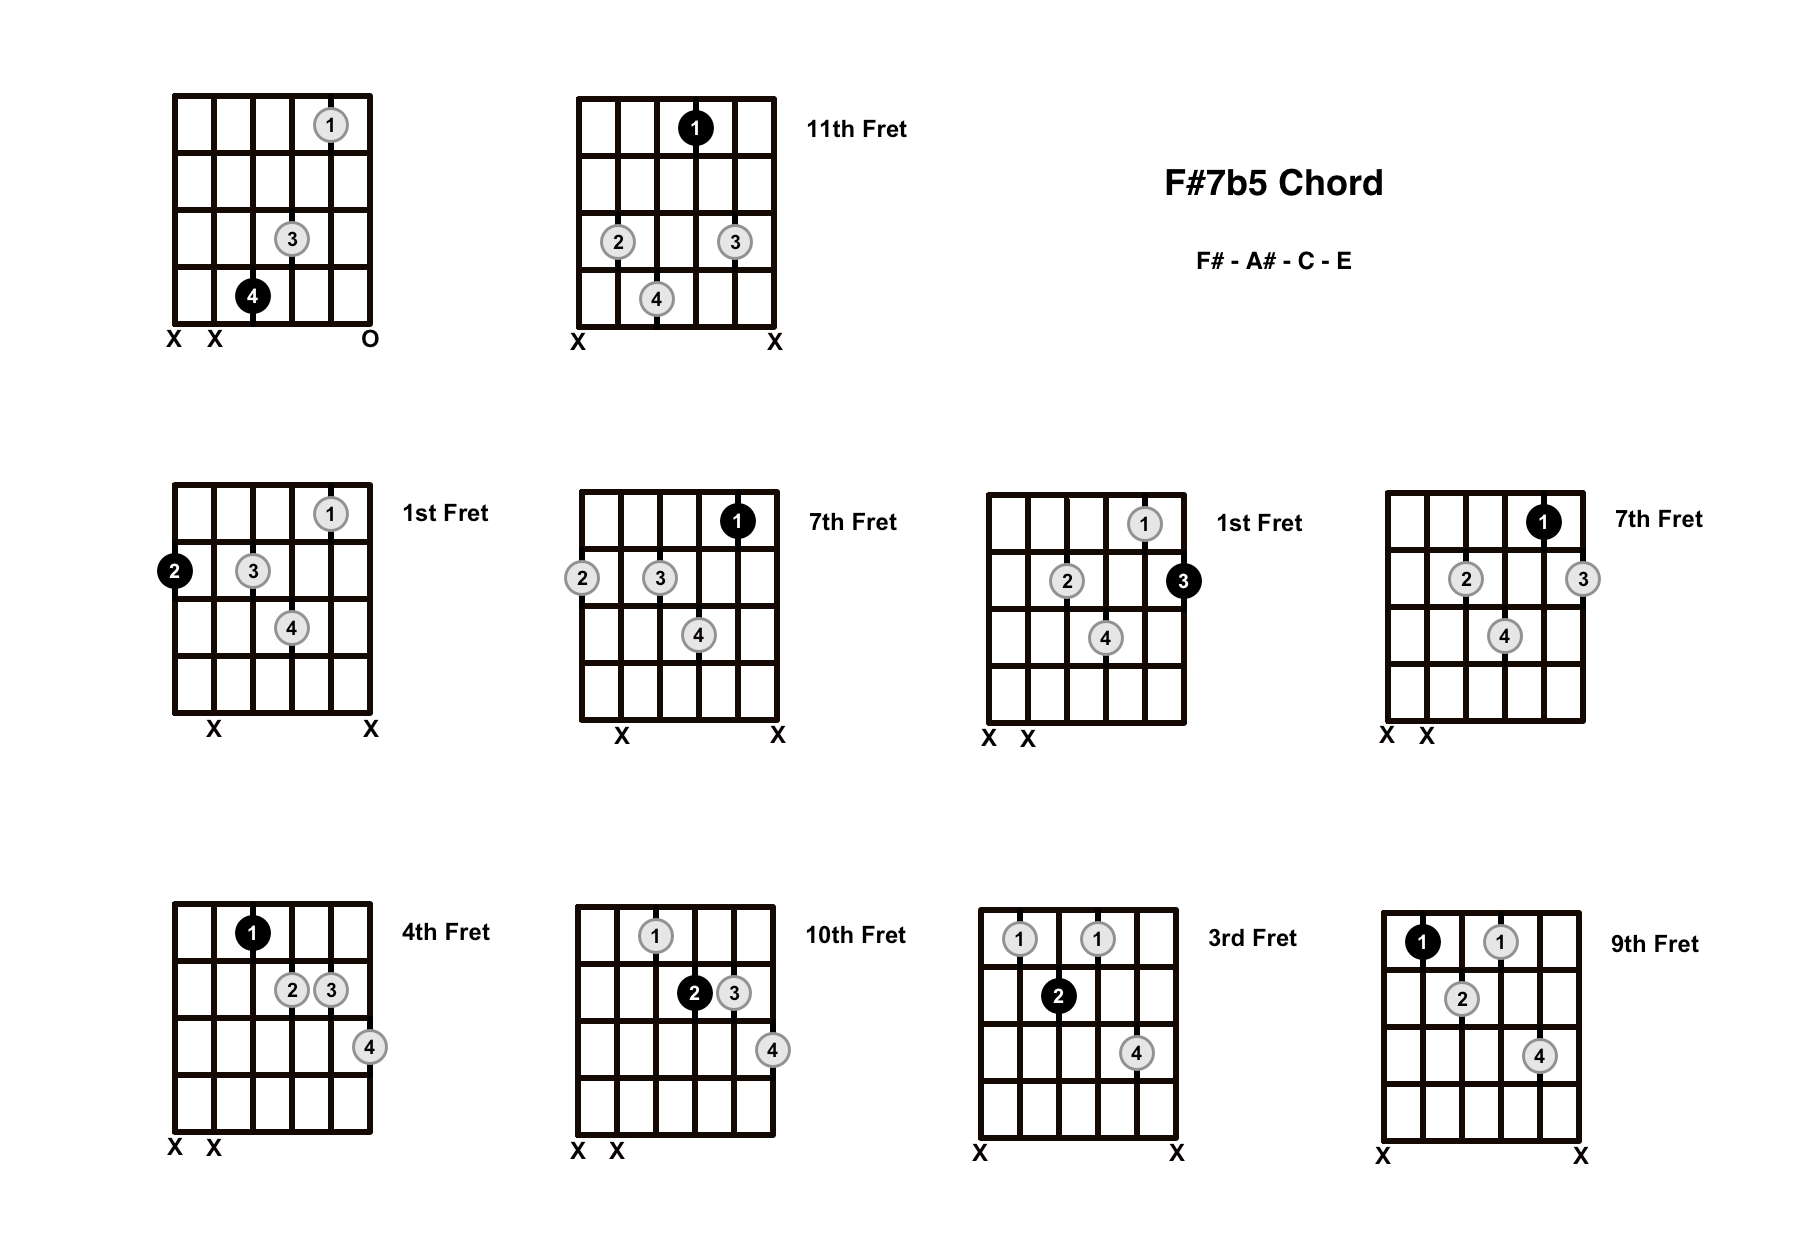 F#7b5 Chord On The Guitar (F Sharp Dominant 7 Flat 5) – Diagrams, Finger Positions and Theory